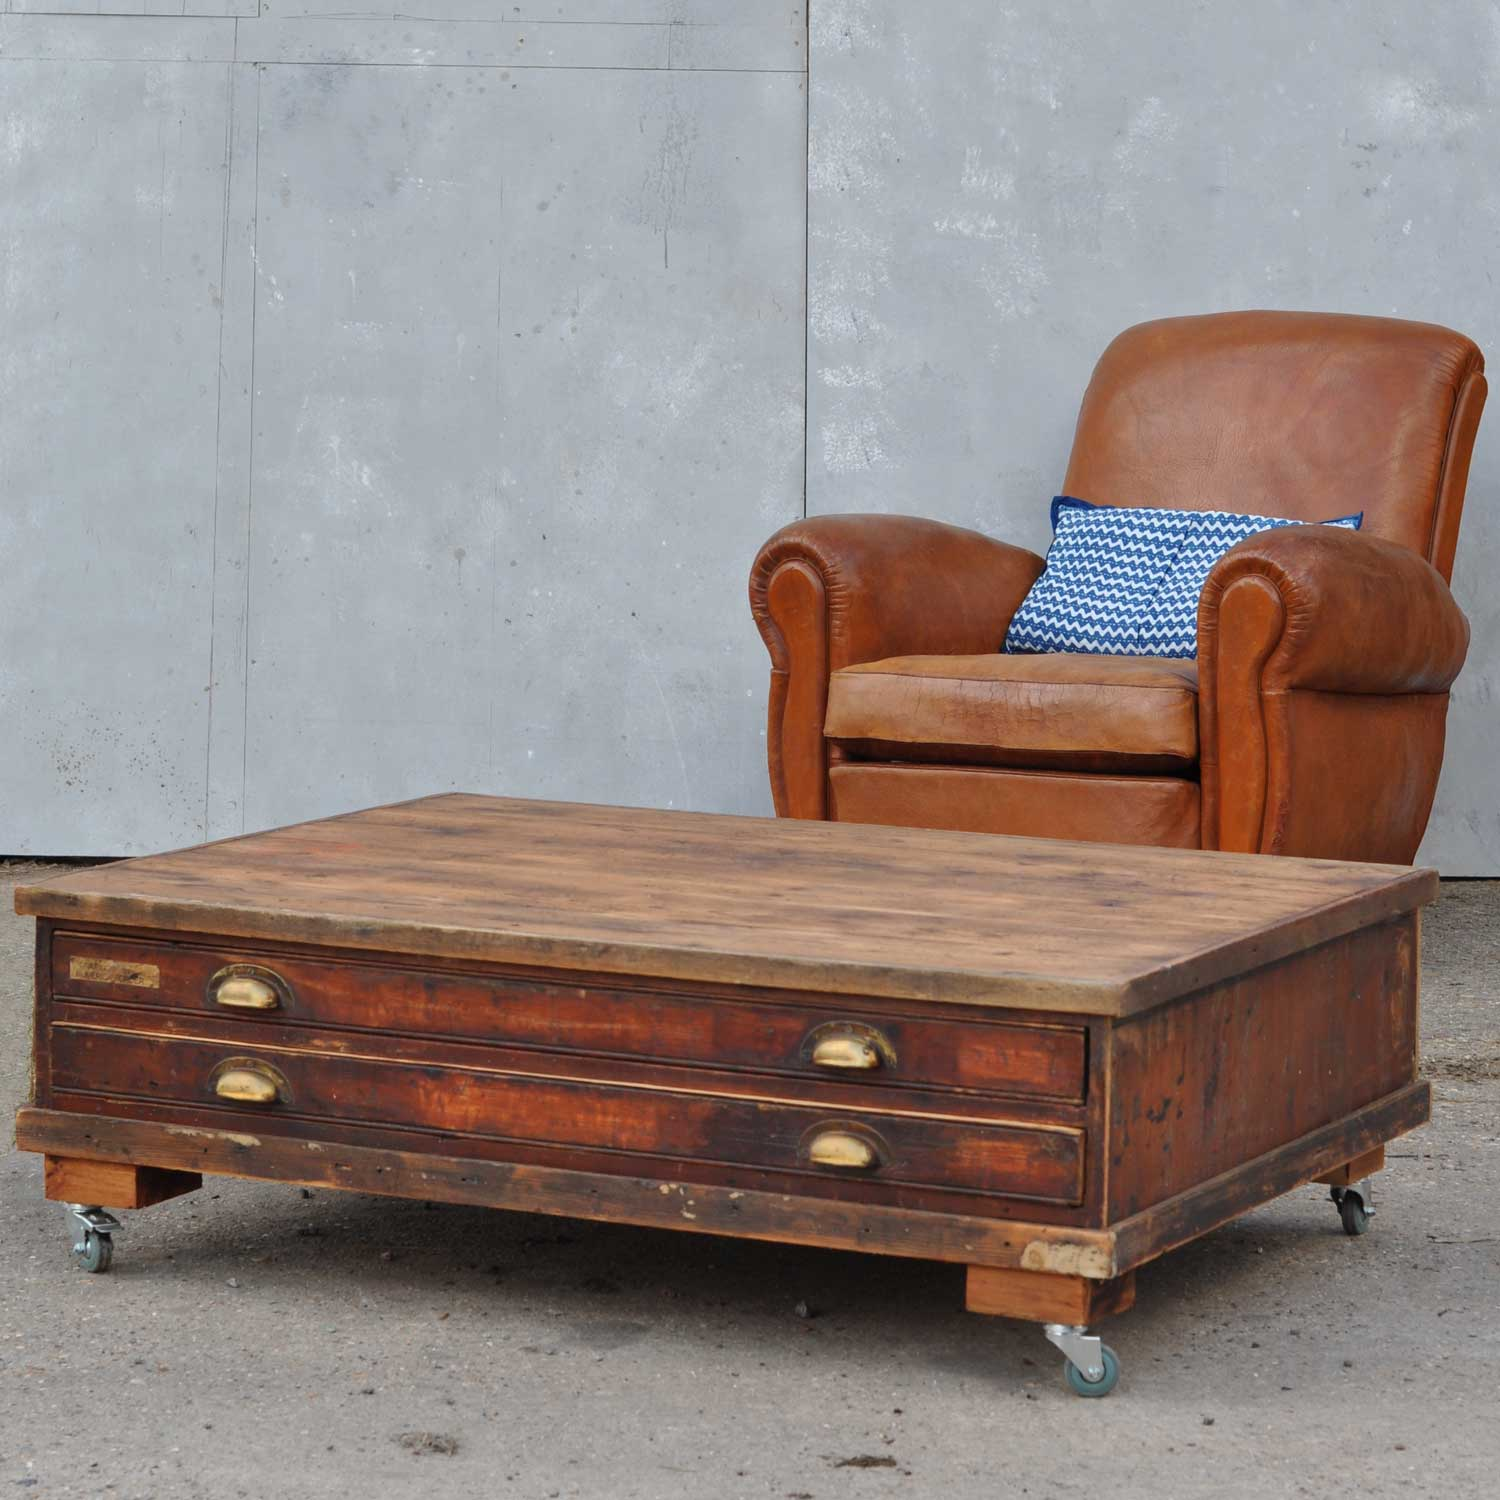 Vintage Plan Chest Coffee Table On Wheels Home Barn Vintage